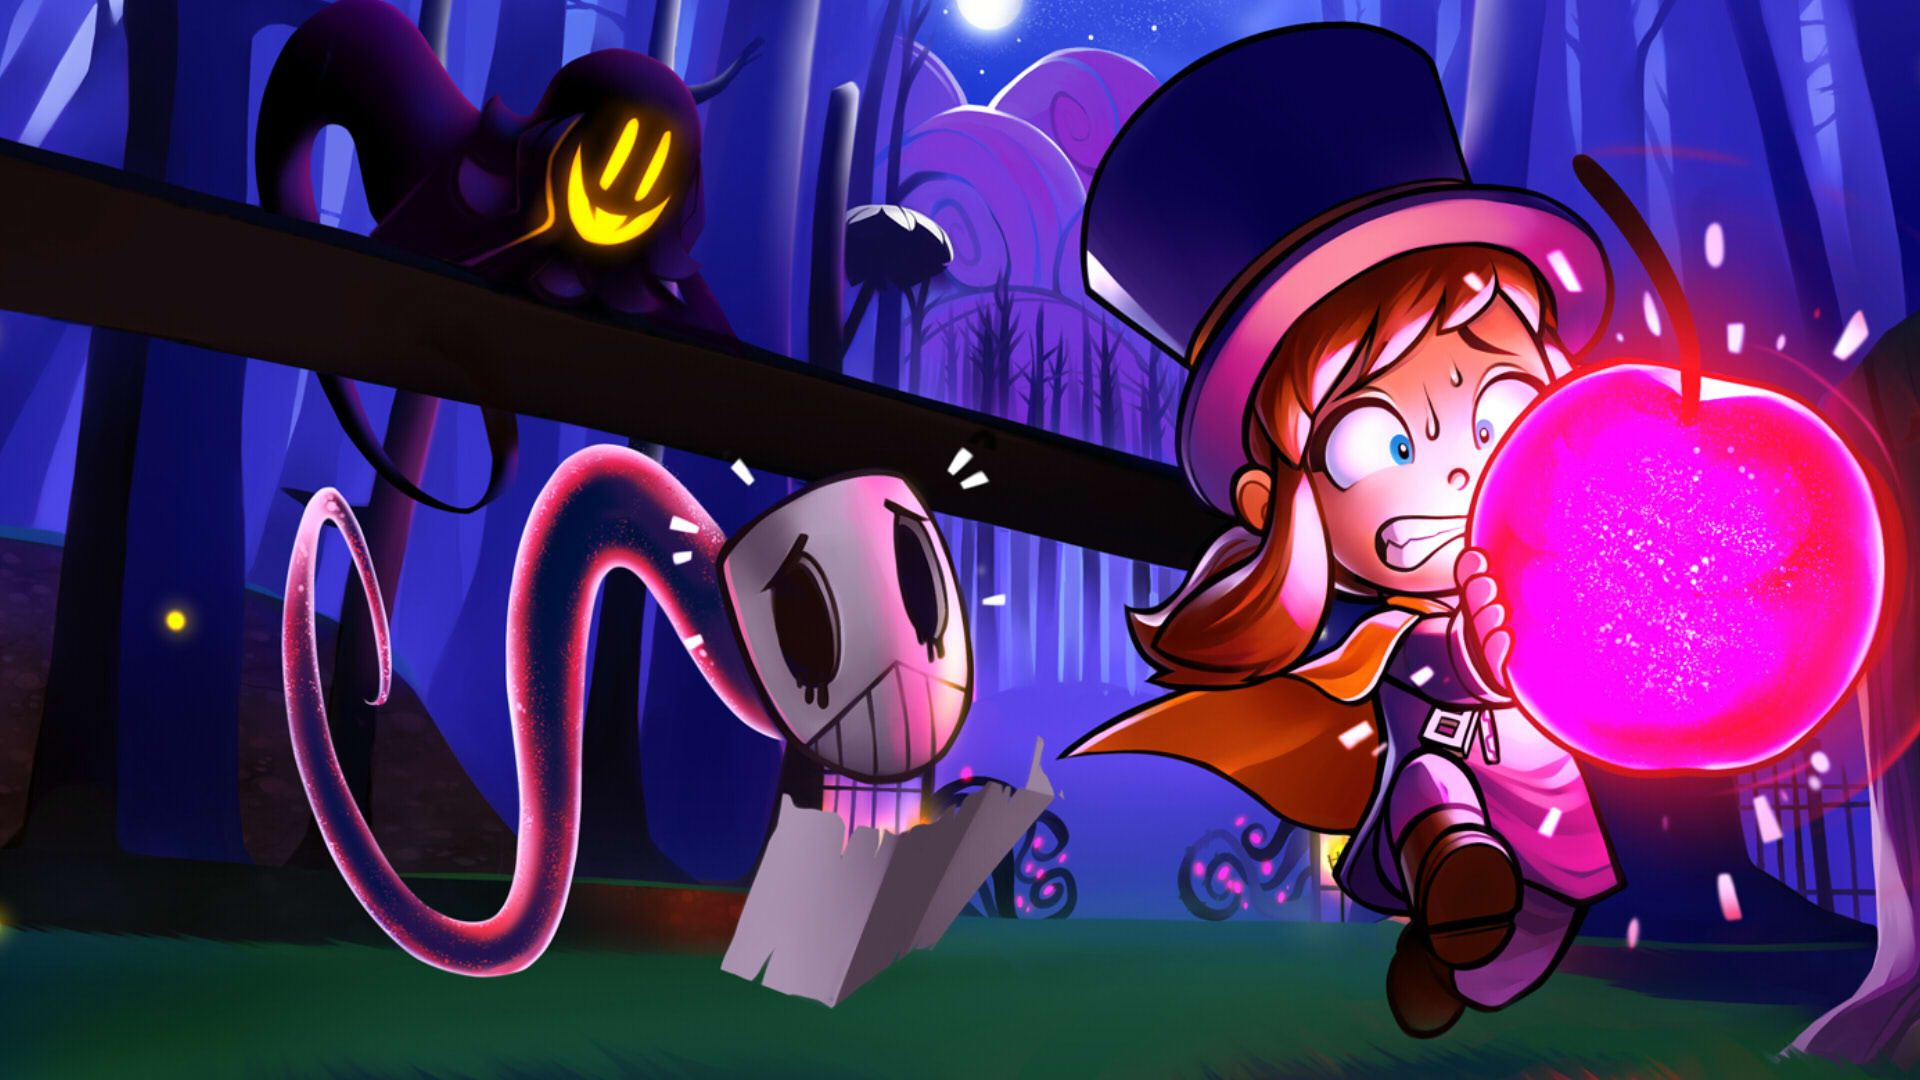 Pin By Ghosttrain13 On A Hat In Time A Hat In Time Wallpaper Hats